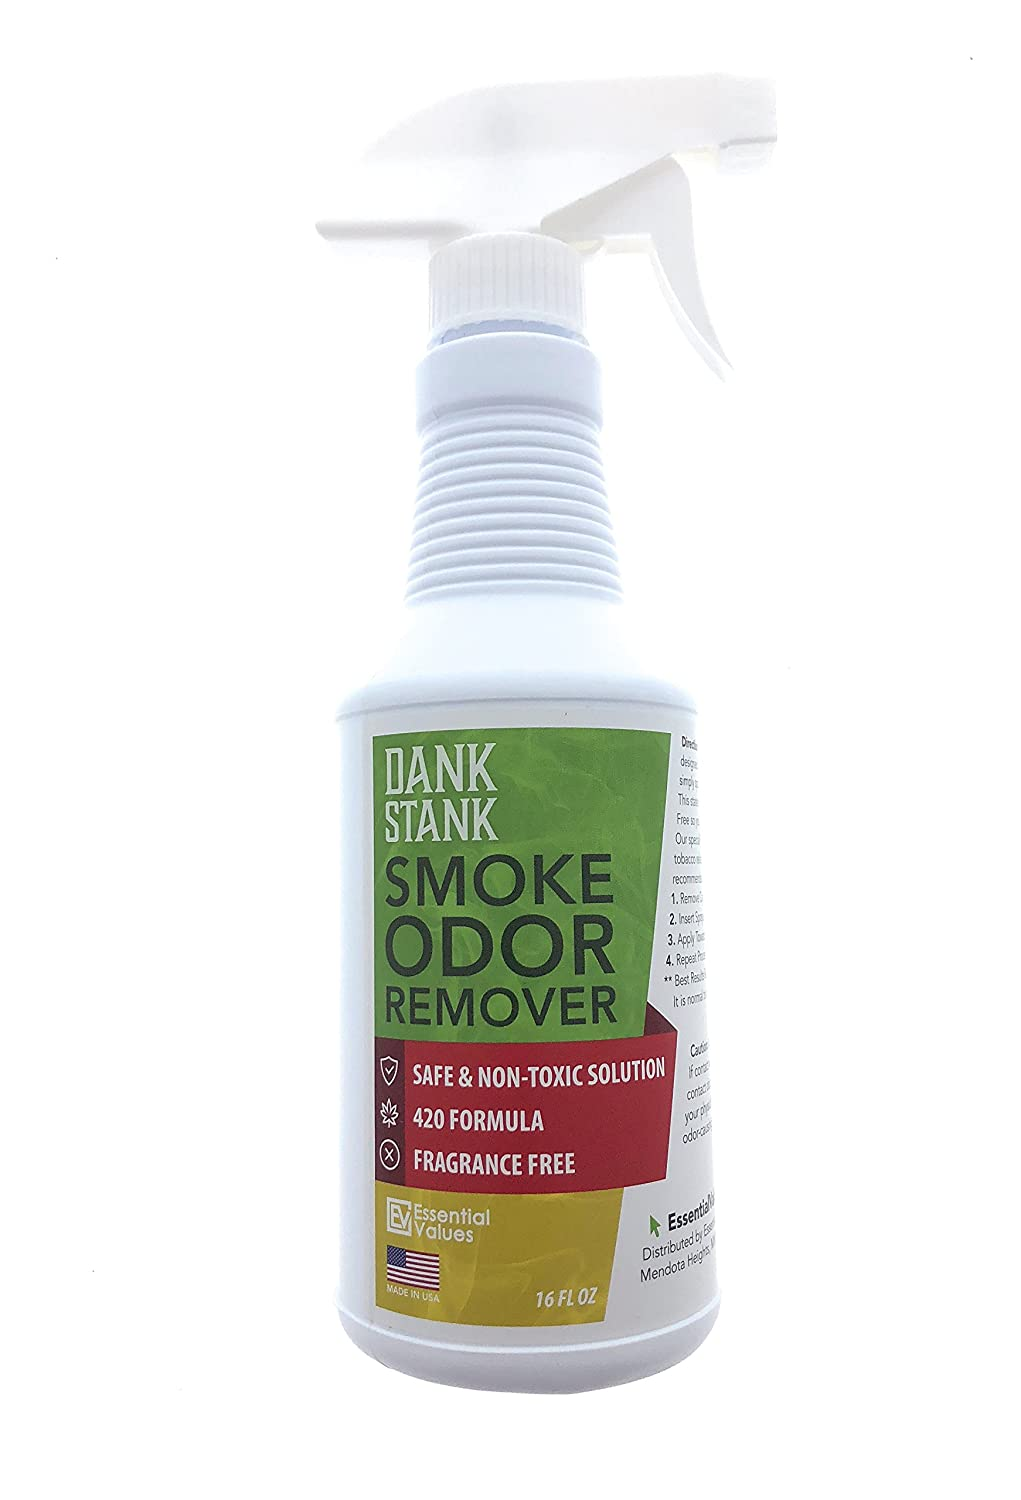 Pot Smoke Odor Eliminator Spray (16oz), for Removing Weed/Cannabis Smells, Keep Unwanted Marijuana Funk Out – Works Best for The Car, Office, Apartment, Home – Barely Legal by Essential Values